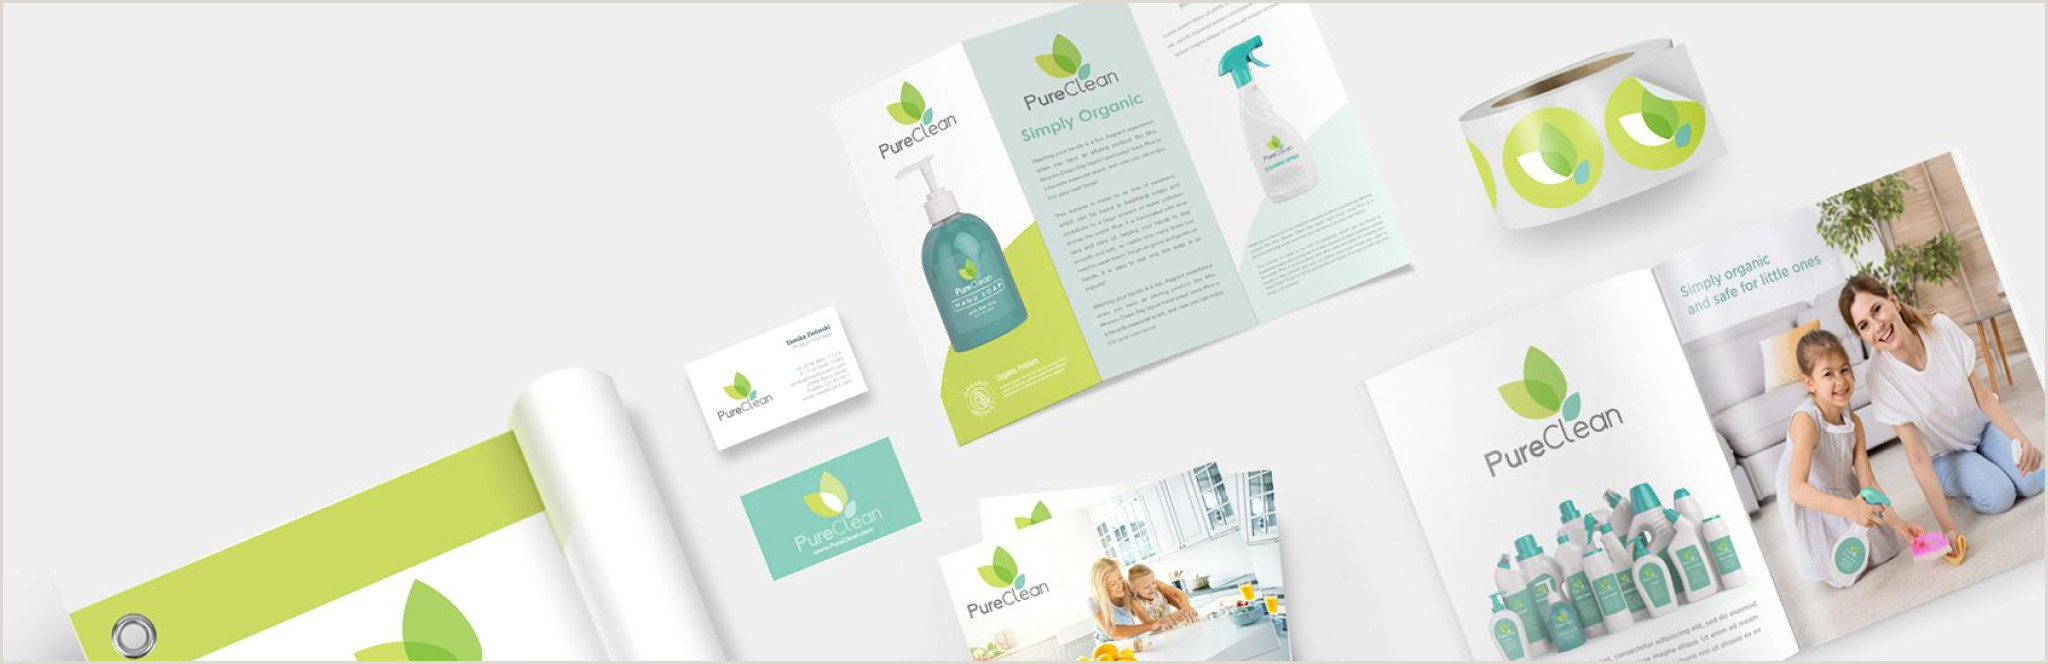 Trade Show Banner Design Templates Printplace High Quality Line Printing Services